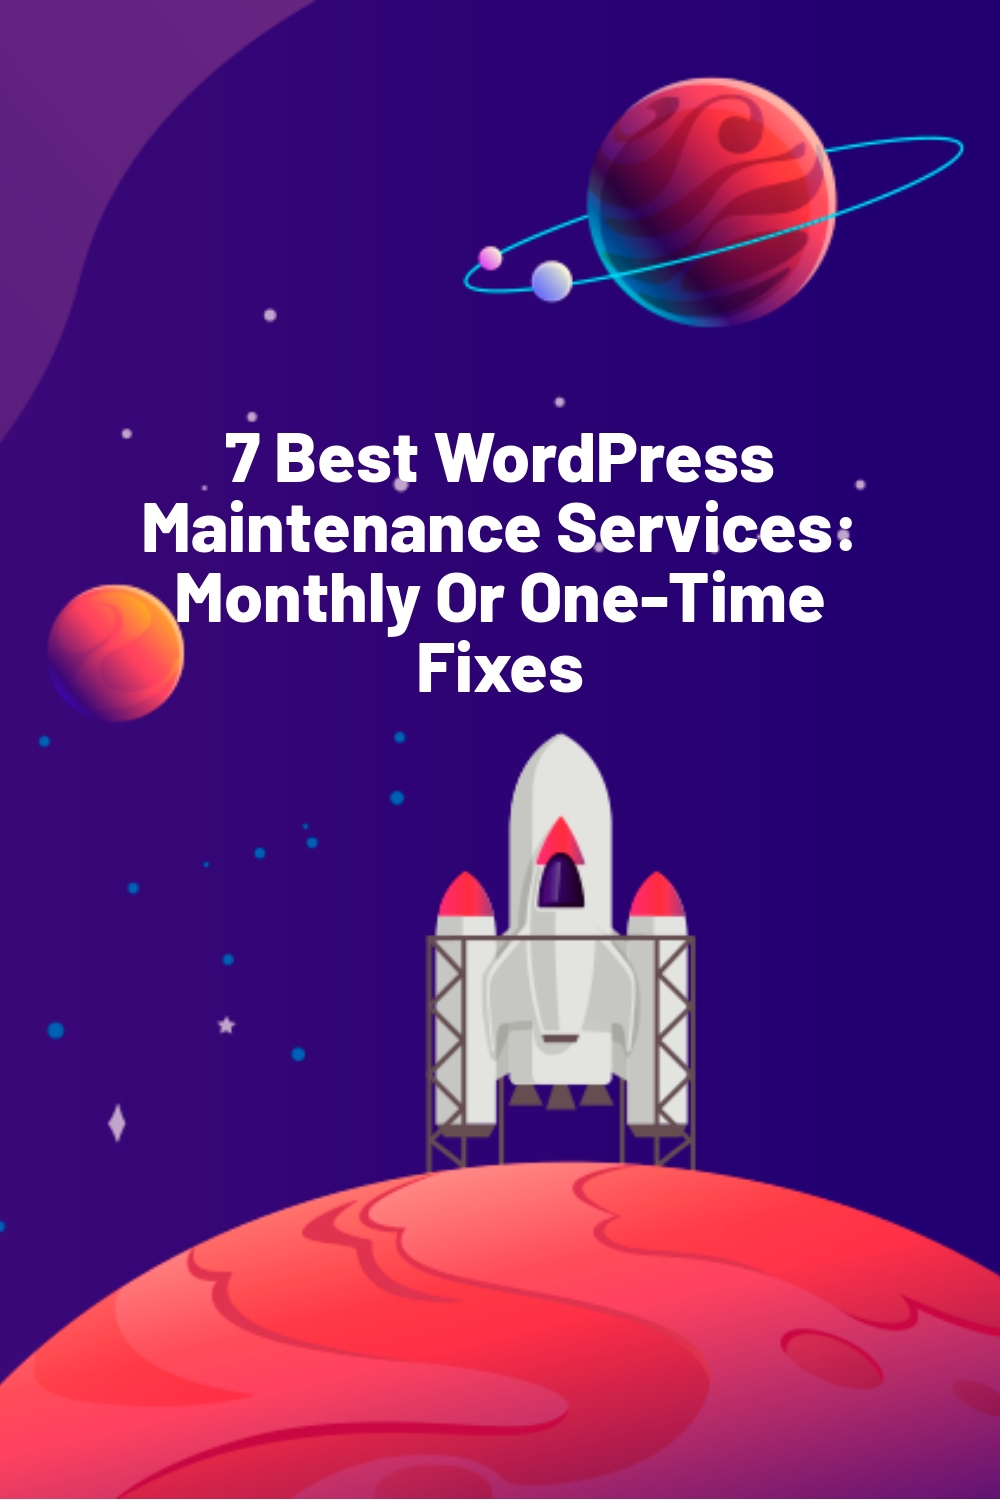 7 Best WordPress Maintenance Services: Monthly Or One-Time Fixes